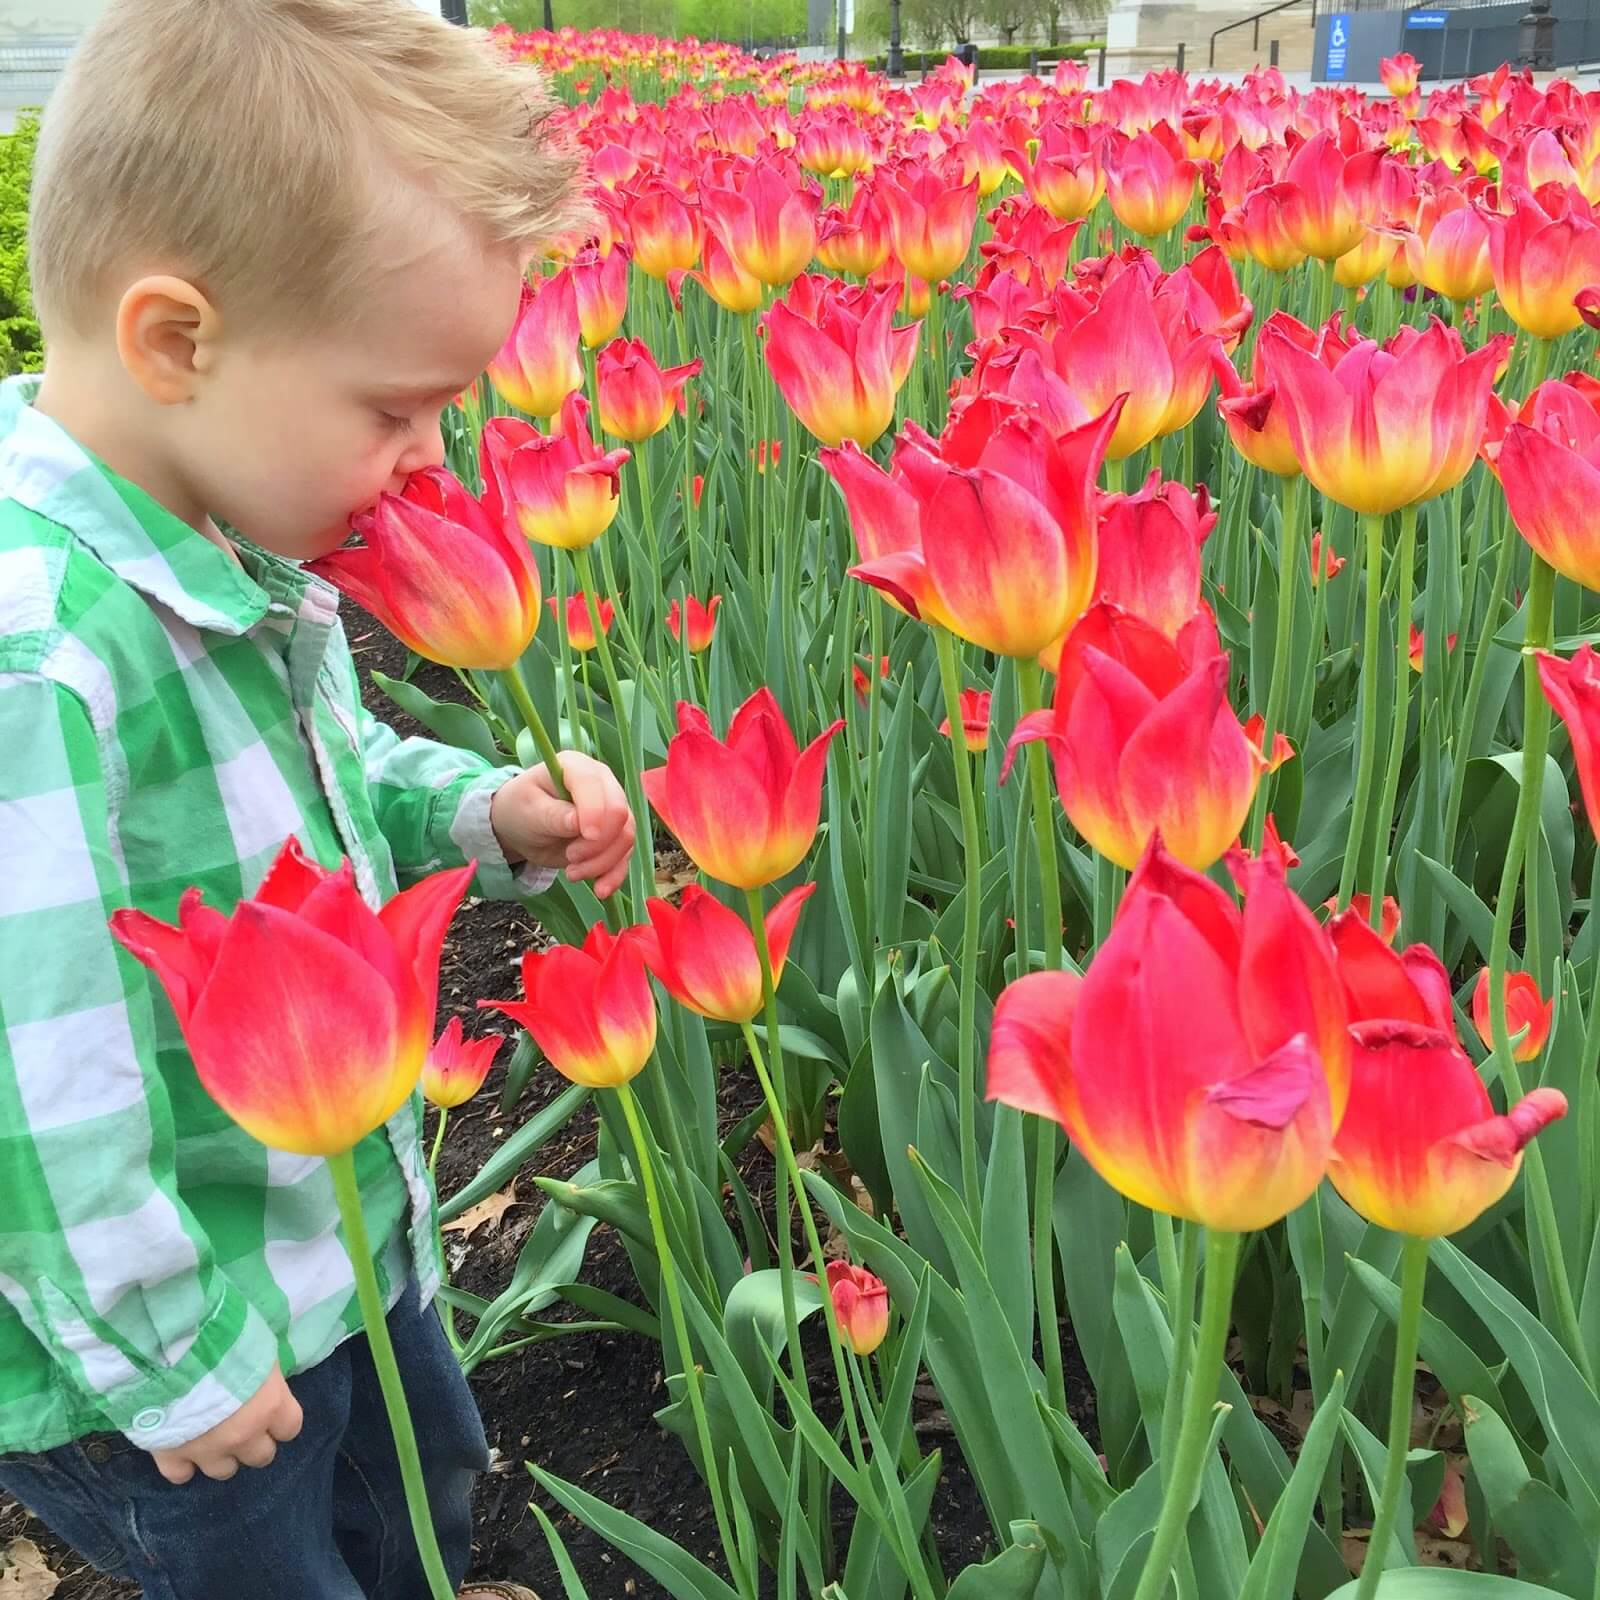 boy smelling pink flowers